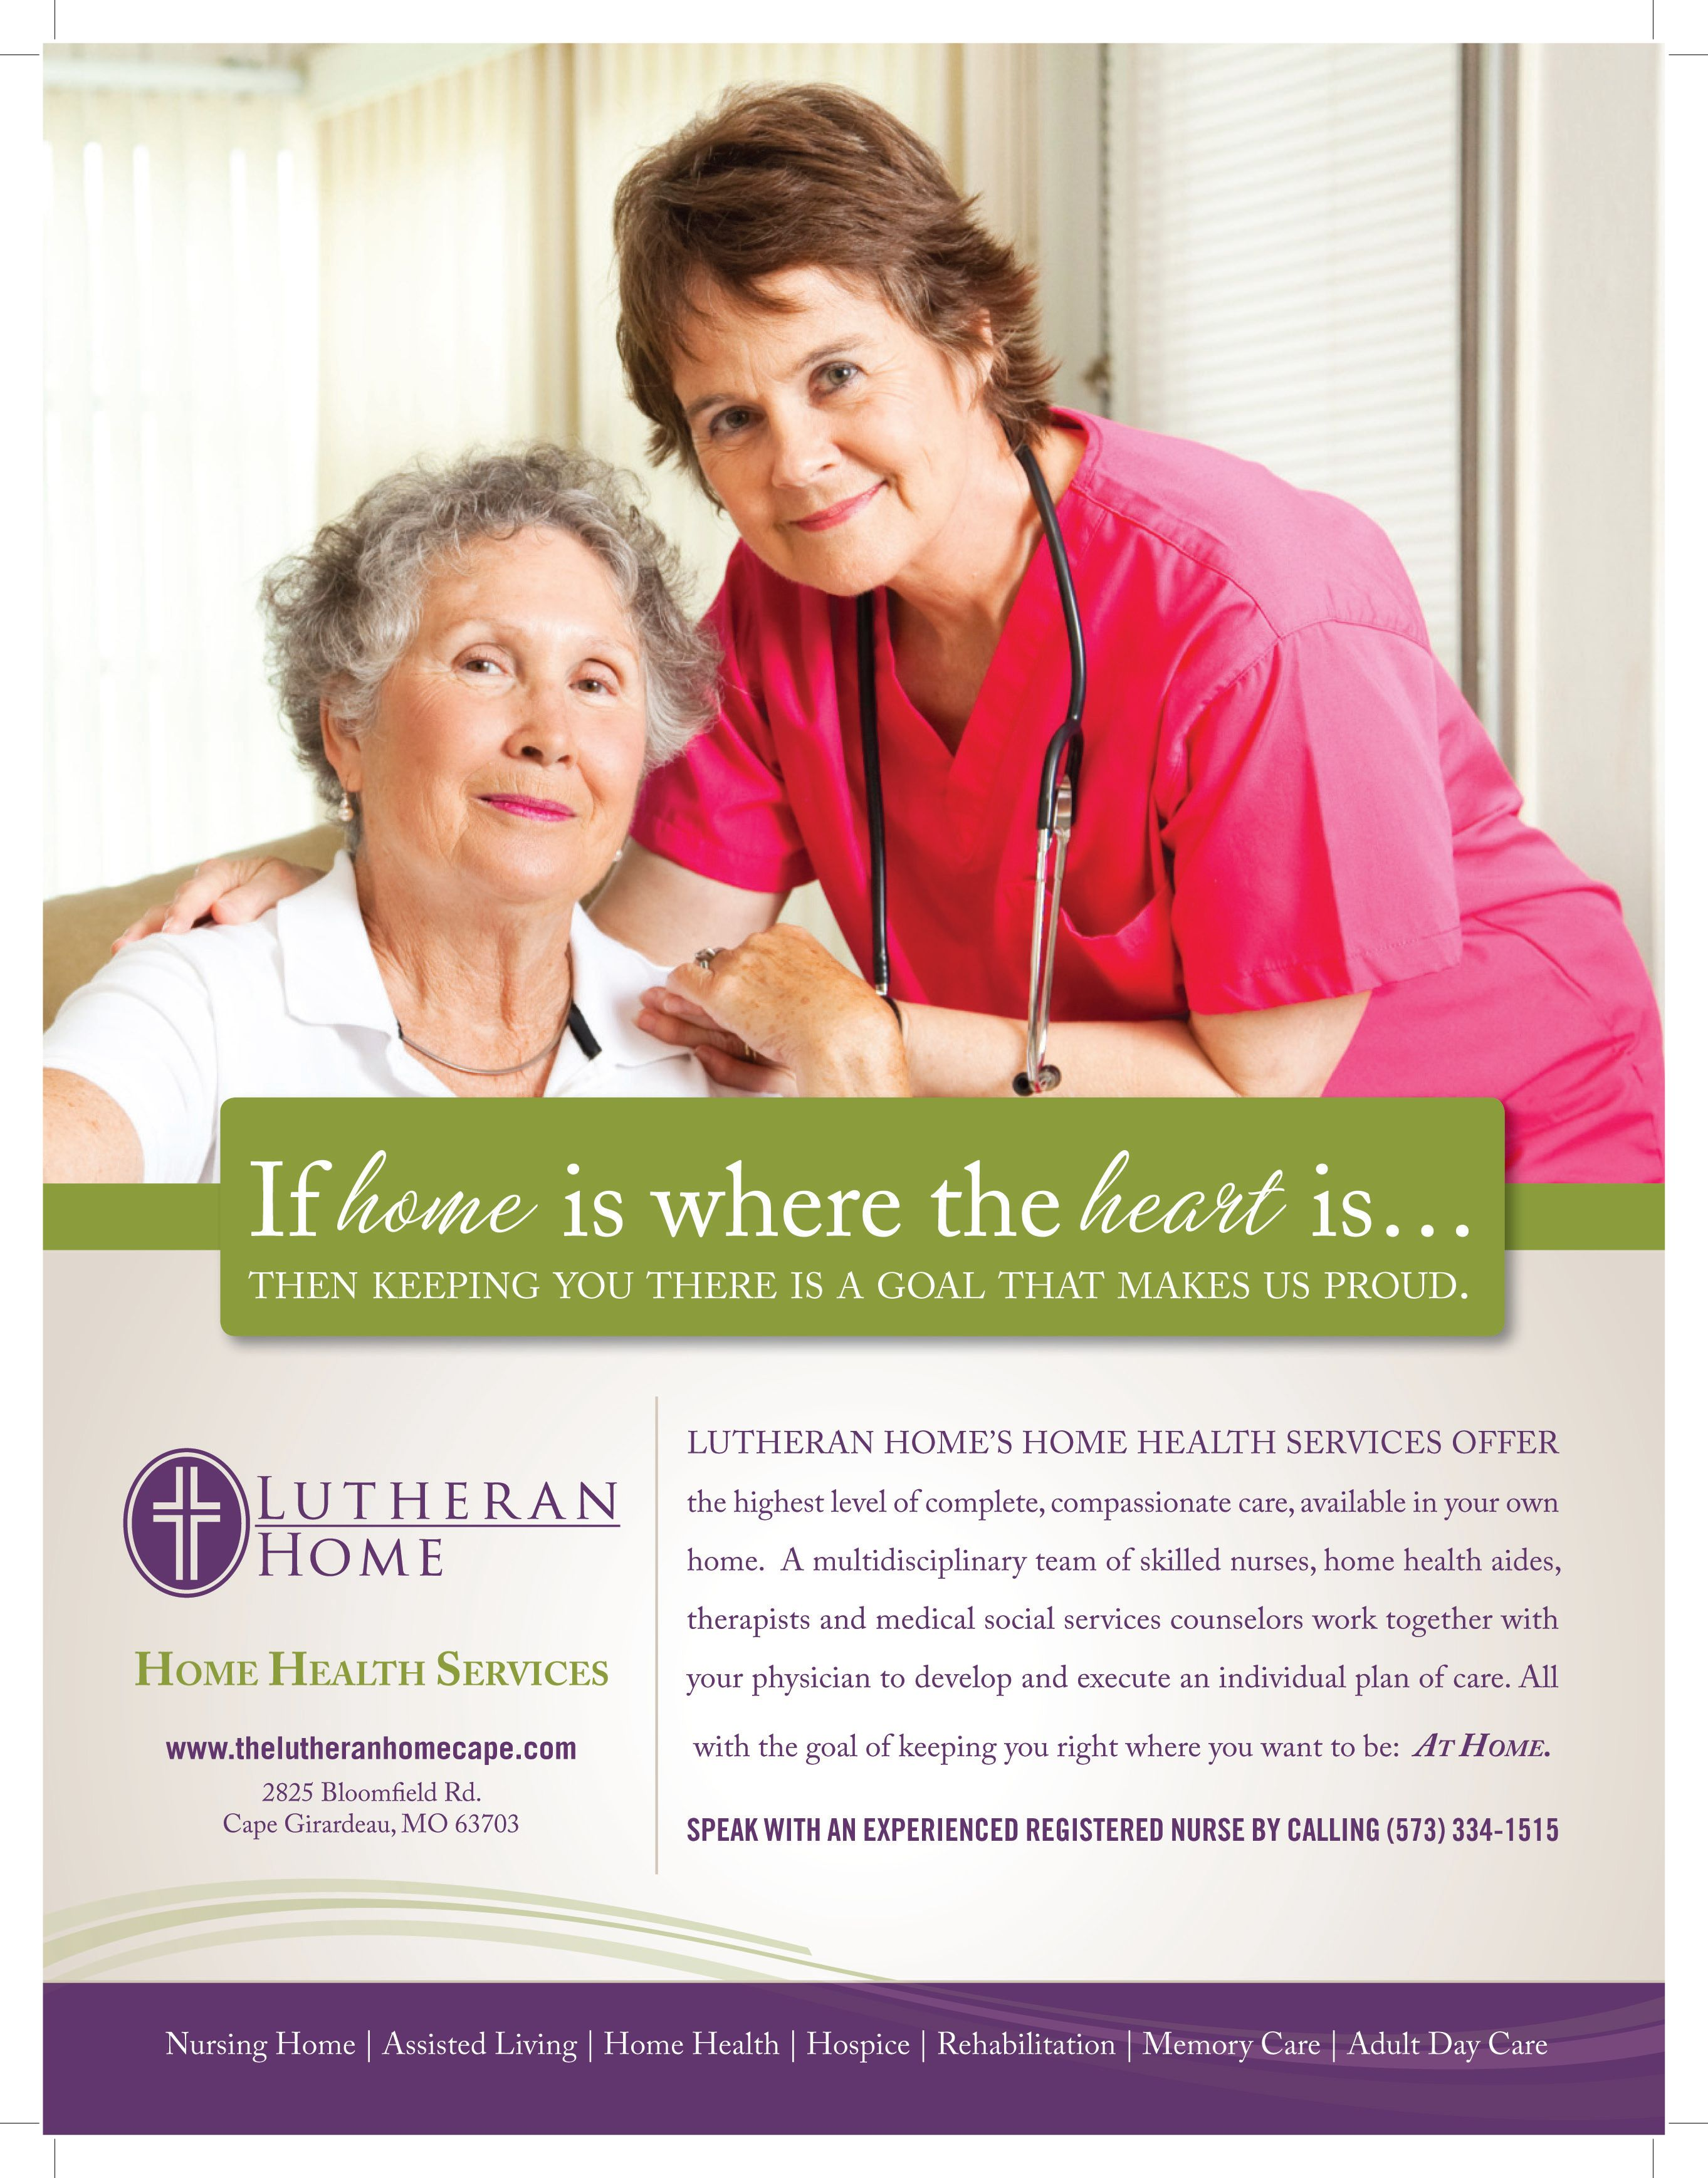 Print Ad For Home Health Care By Bold Marketing Home Health Aide Health Marketing Home Health Services